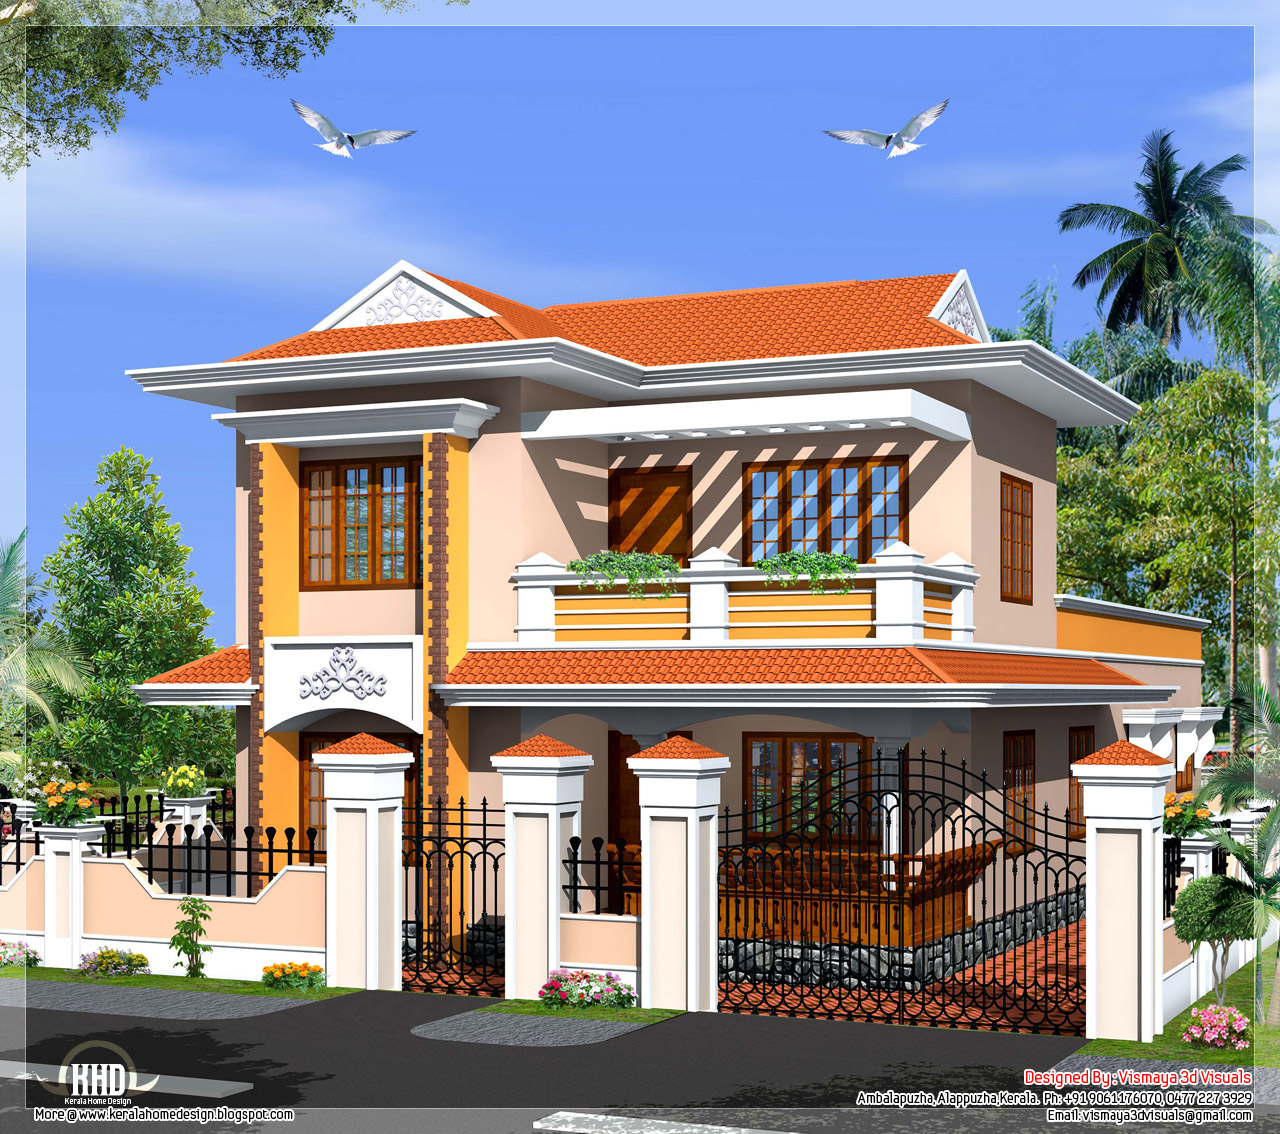 Kerala model villa in 2110 in square feet kerala home for Home models in tamilnadu pictures